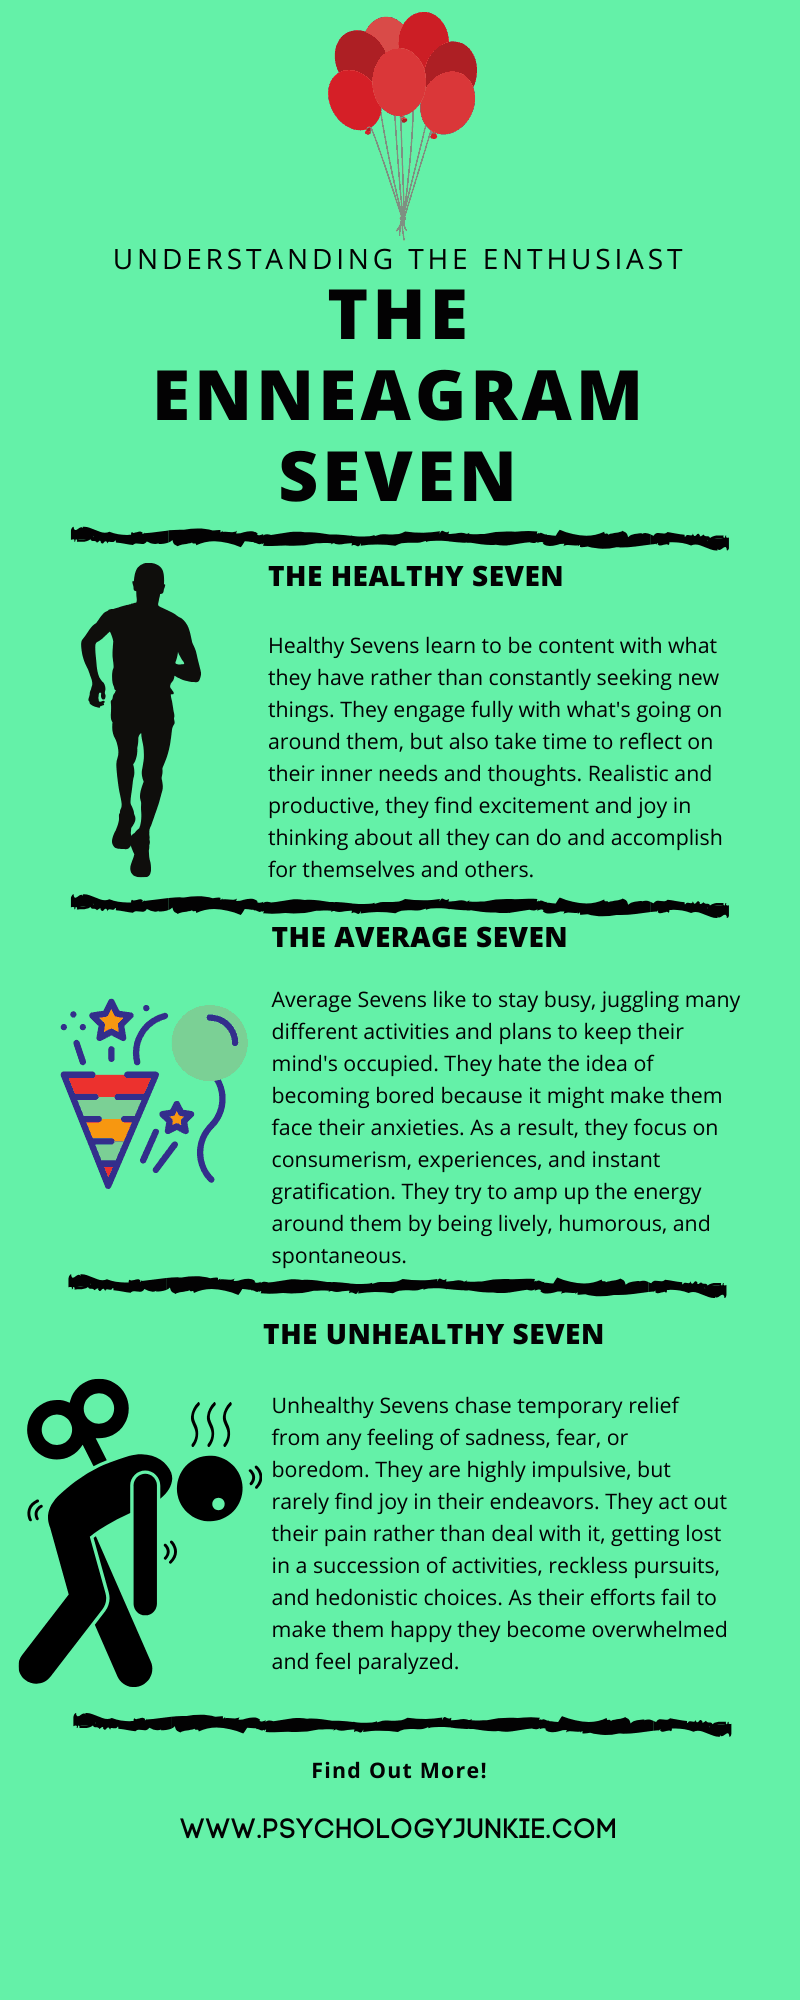 How the #enneagram seven appears during healthy, average, or unhealthy levels of maturity. #Seven #enneatype #personality